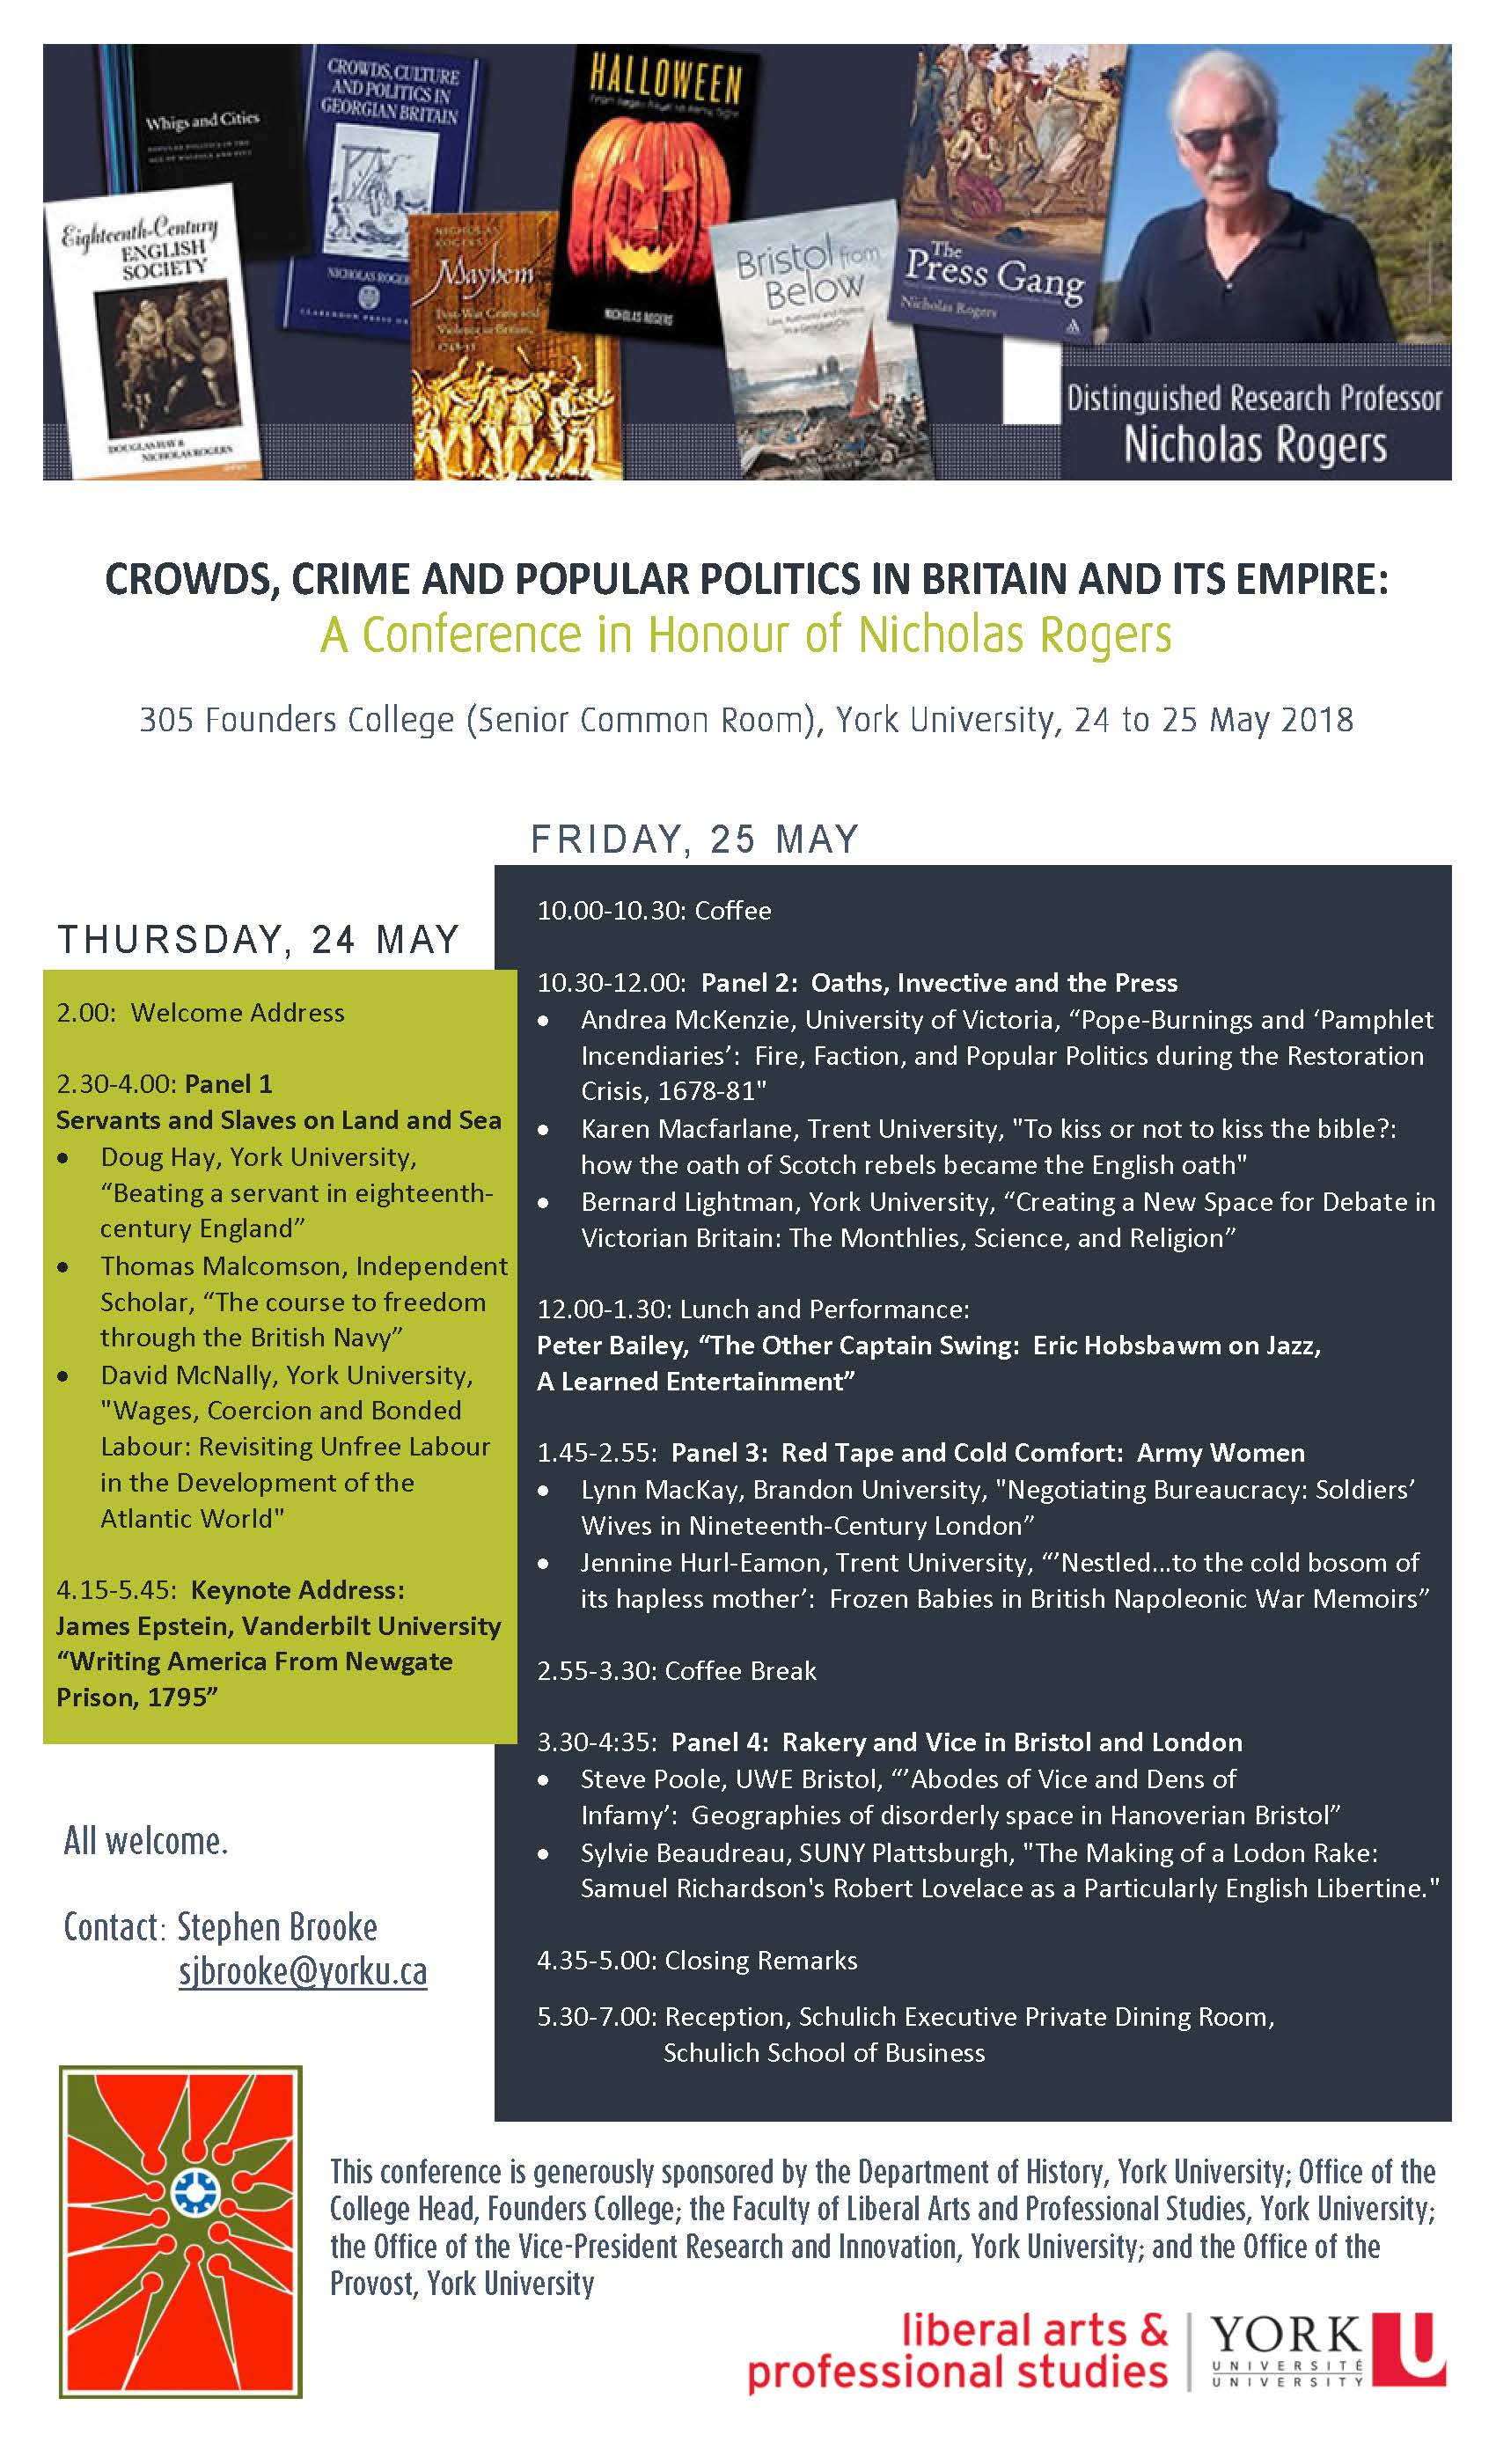 A Conference in Honour of Nicholas Rogers - Crowds, Crime and Popular Politics in Britain and Its Empire @ Natalie Zemon Davis Conference Room, Room 2098, Sidney Smith Hall, Department of History, University of Toronto | Toronto | Ontario | Canada